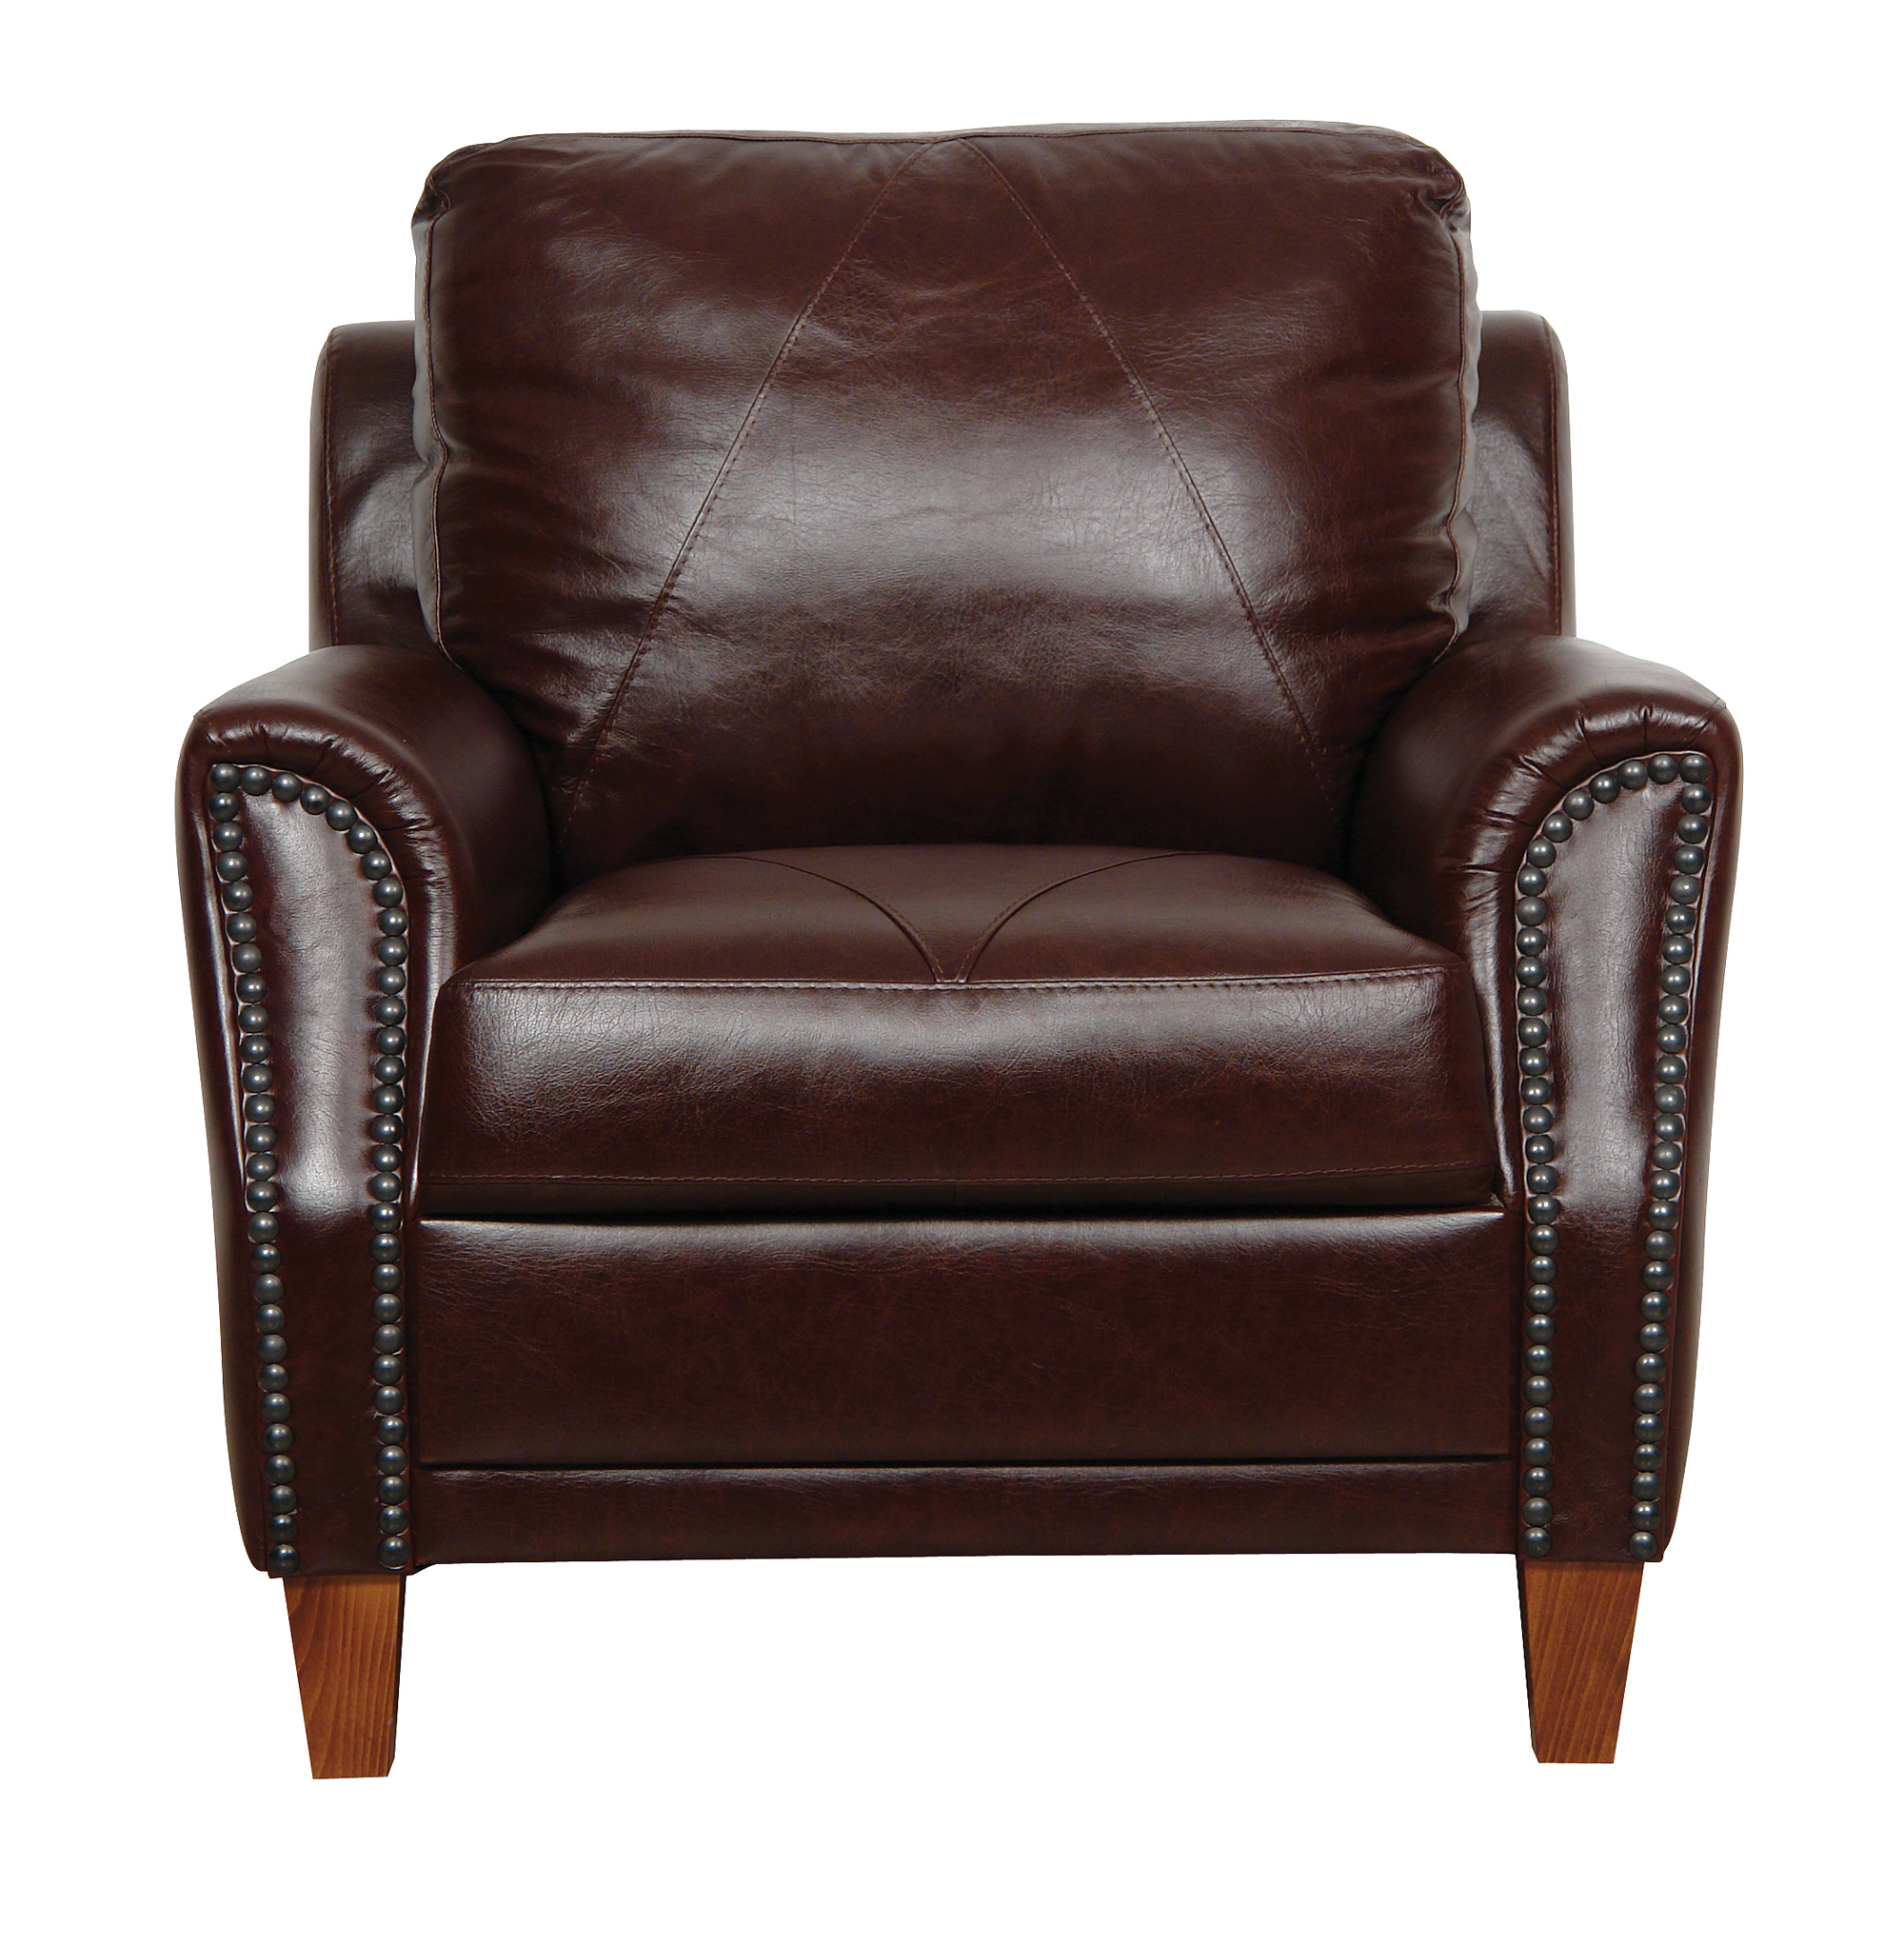 Austin Group - Luke Leather Furniture